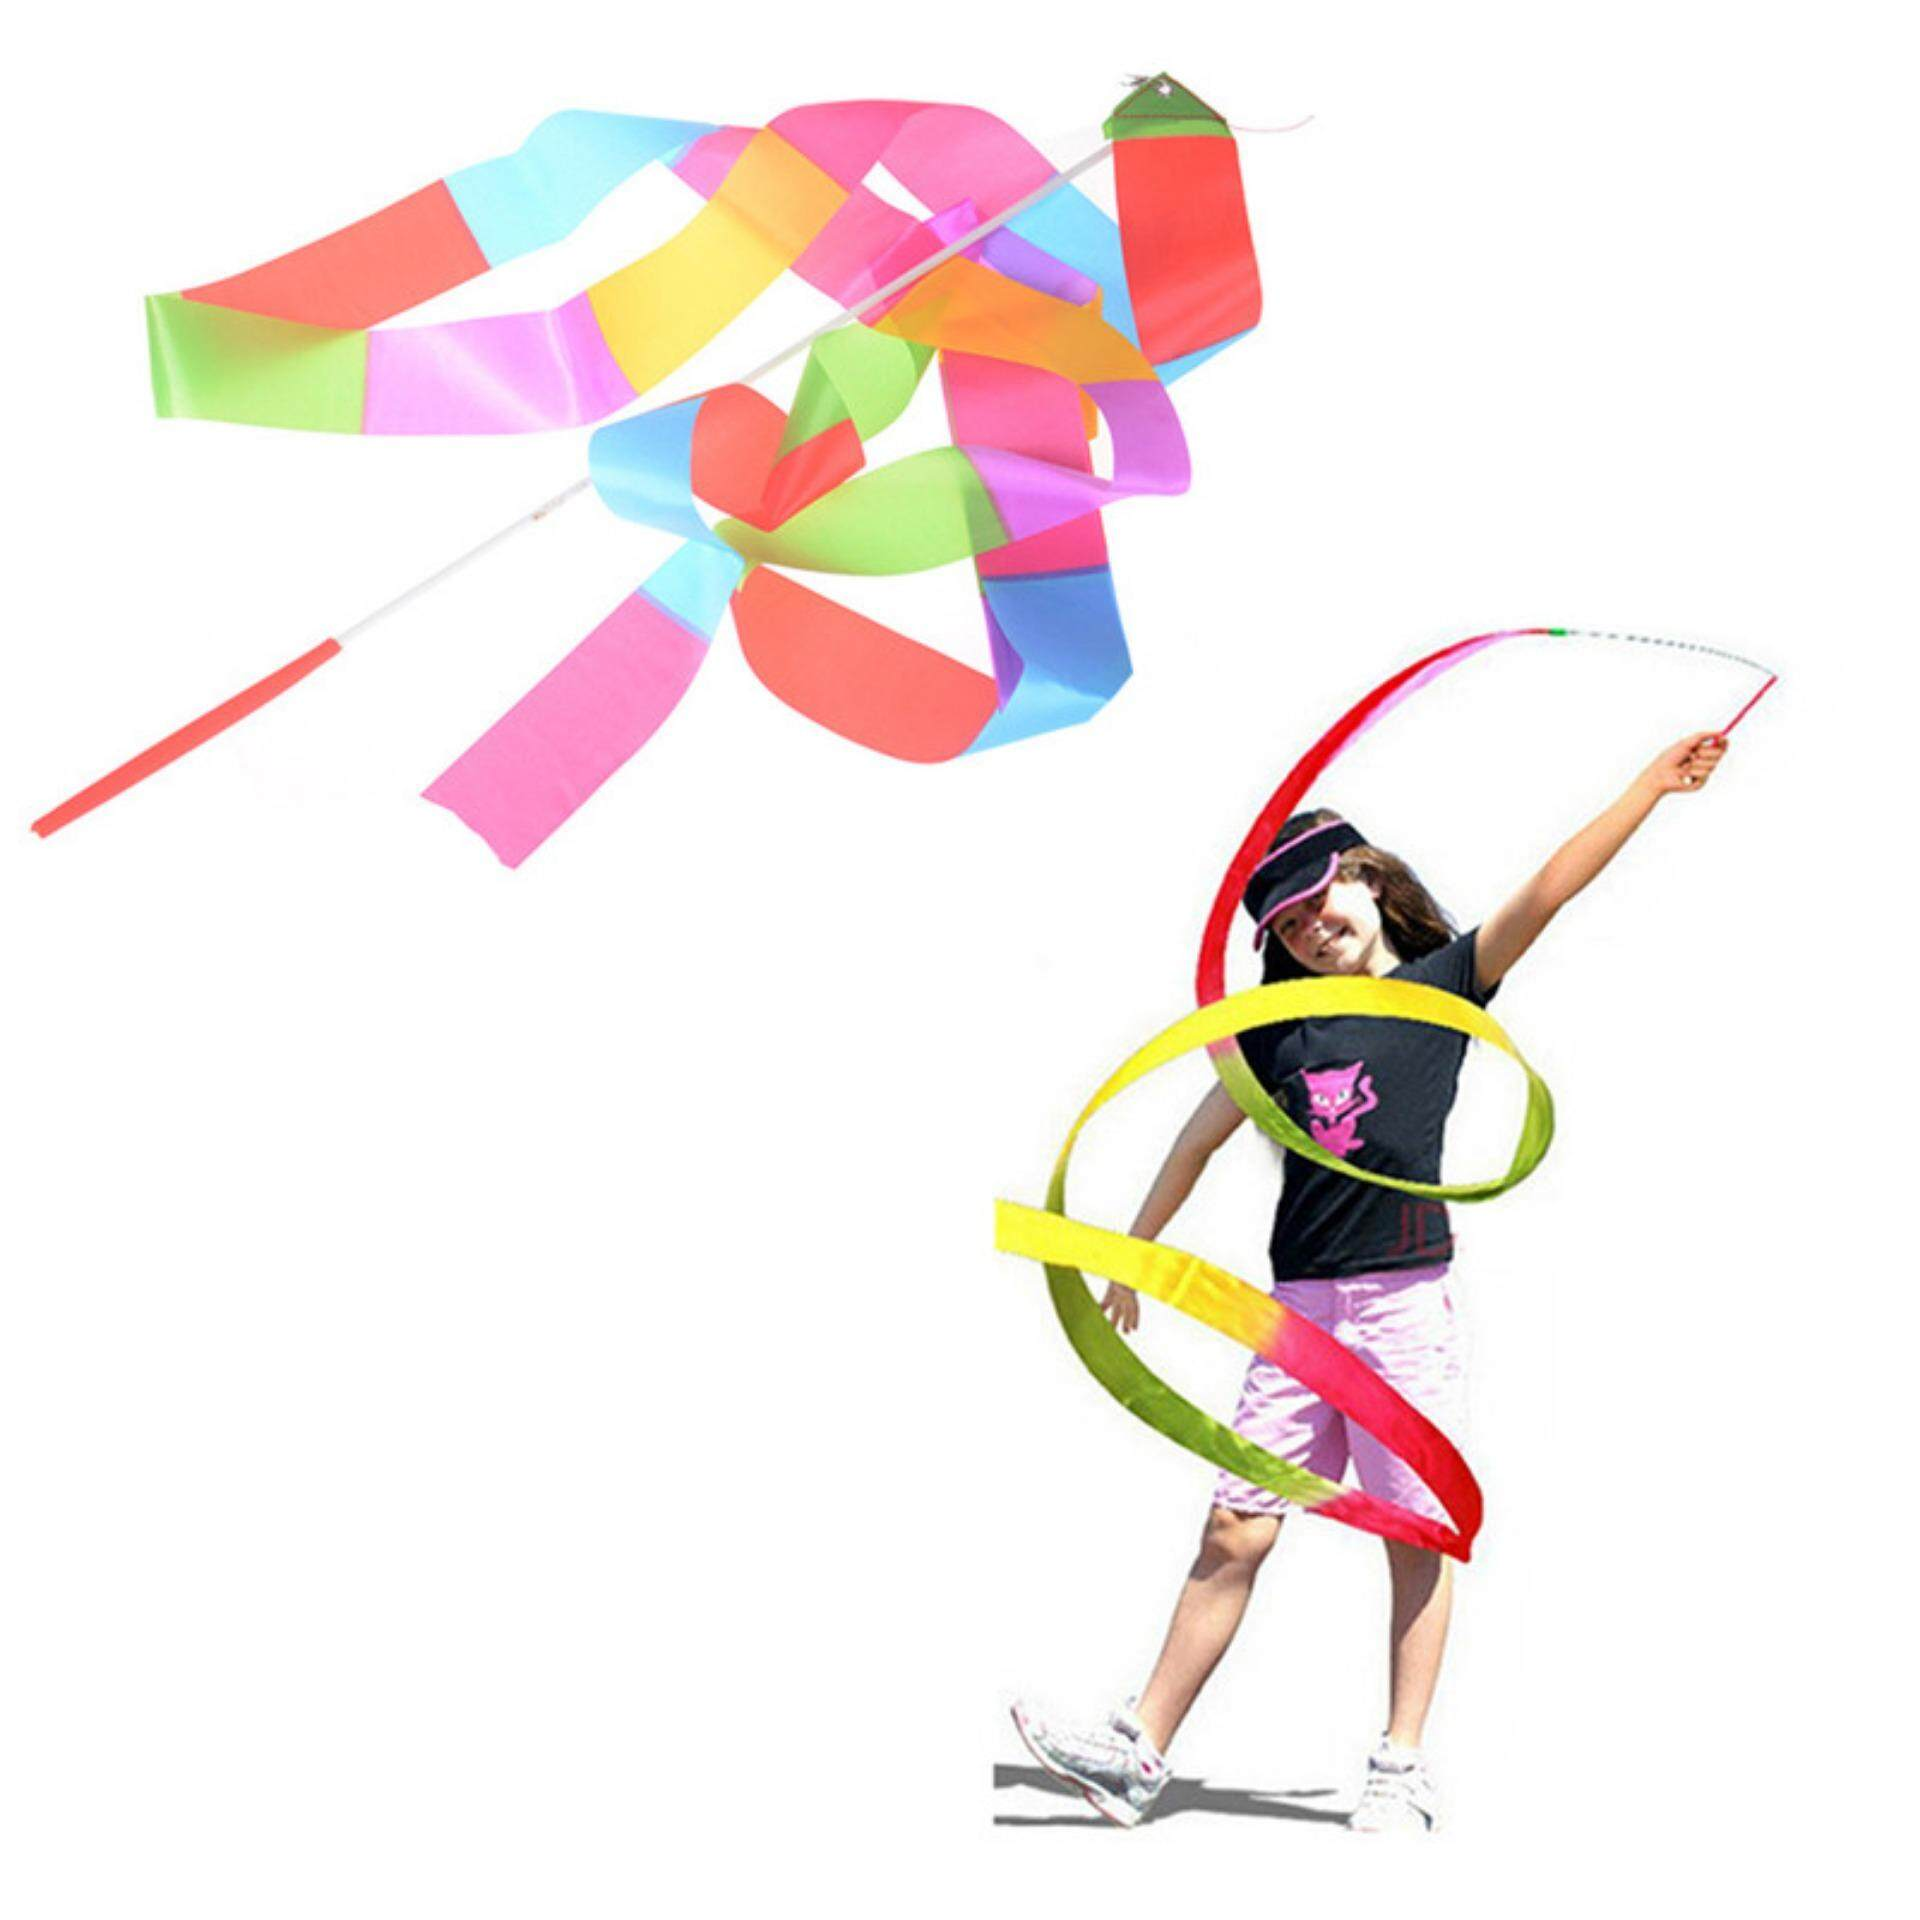 Vegoo Popular Colorful 4m Ribbon Gymnastics Dance Dancer Toy Kid Outdoor Sport Toy By Vegoo.